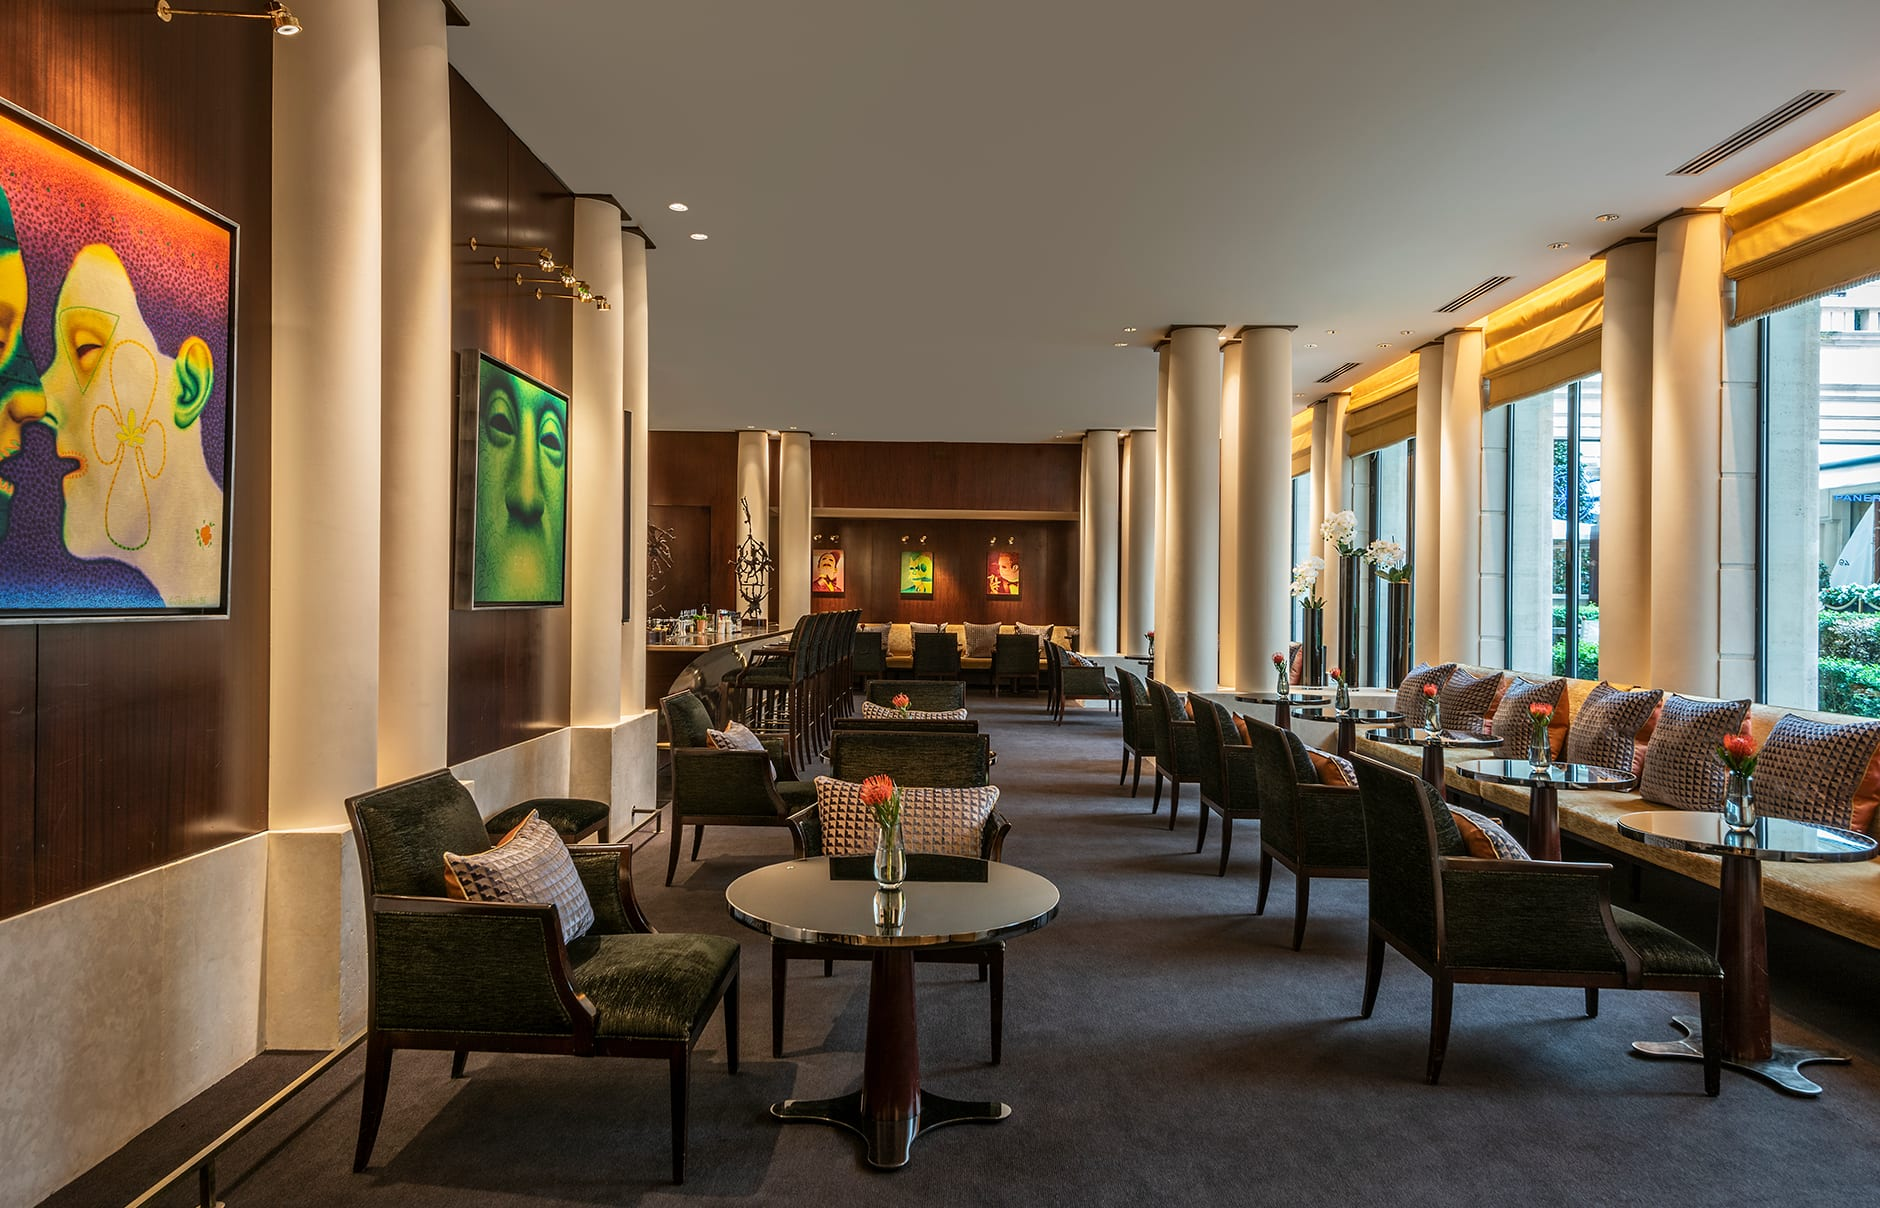 Park Hyatt Paris-Vendome, Paris, France. Luxury Hotel Review by TravelPlusStyle. Photo © Hyatt Corporation